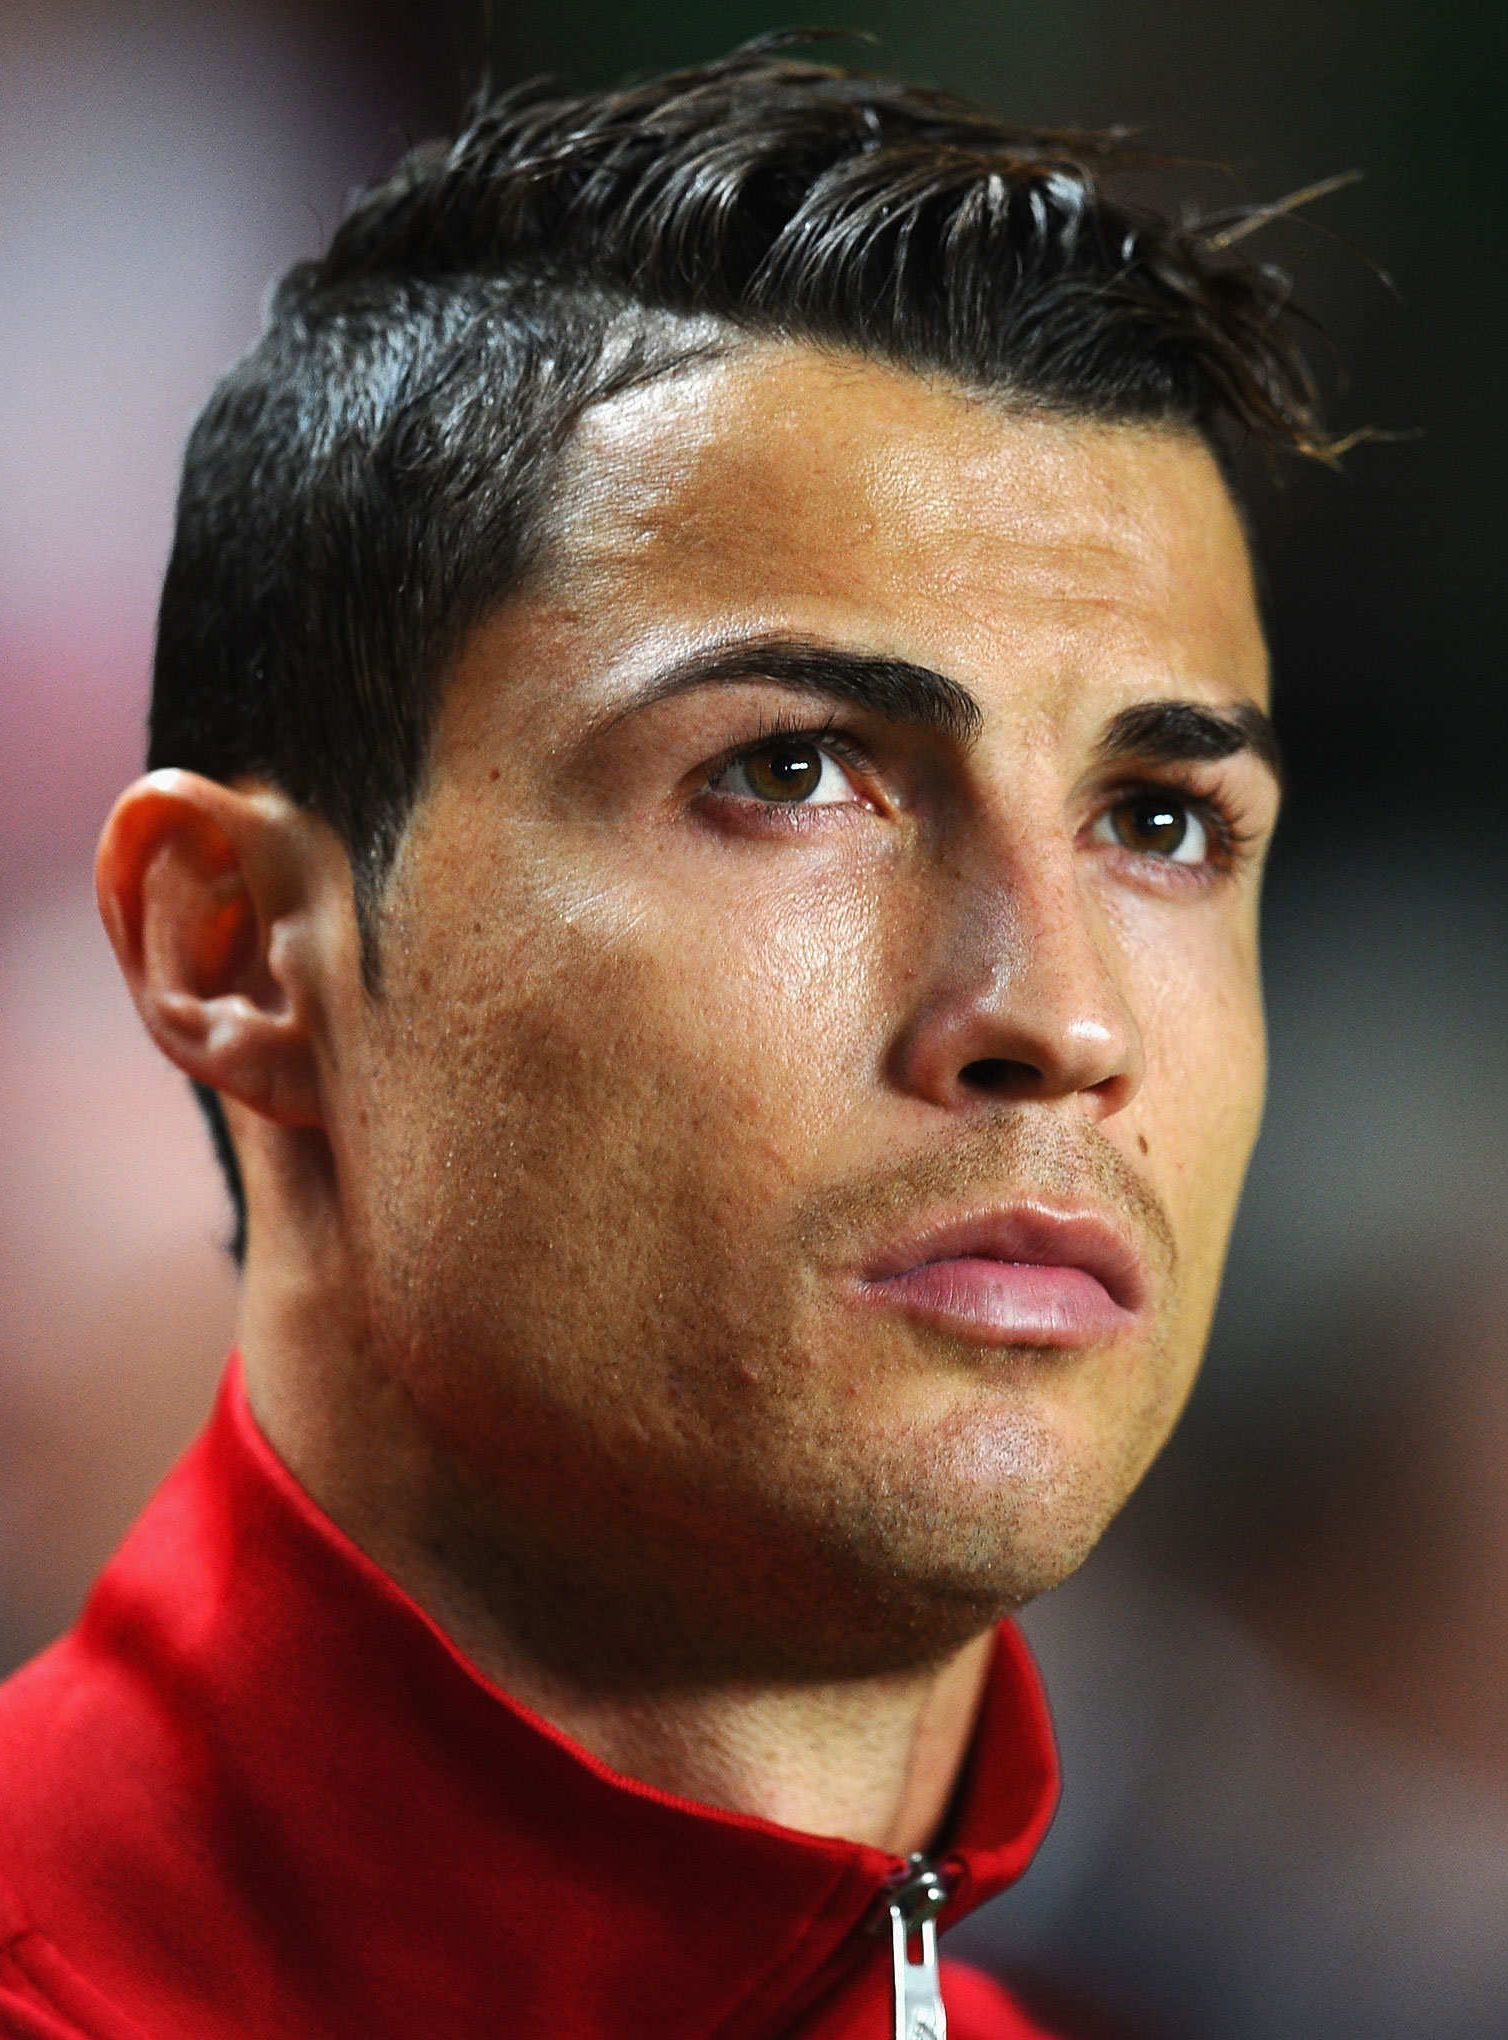 From Fellaini to Ronaldo, the Spectrum of World Cup Soccer